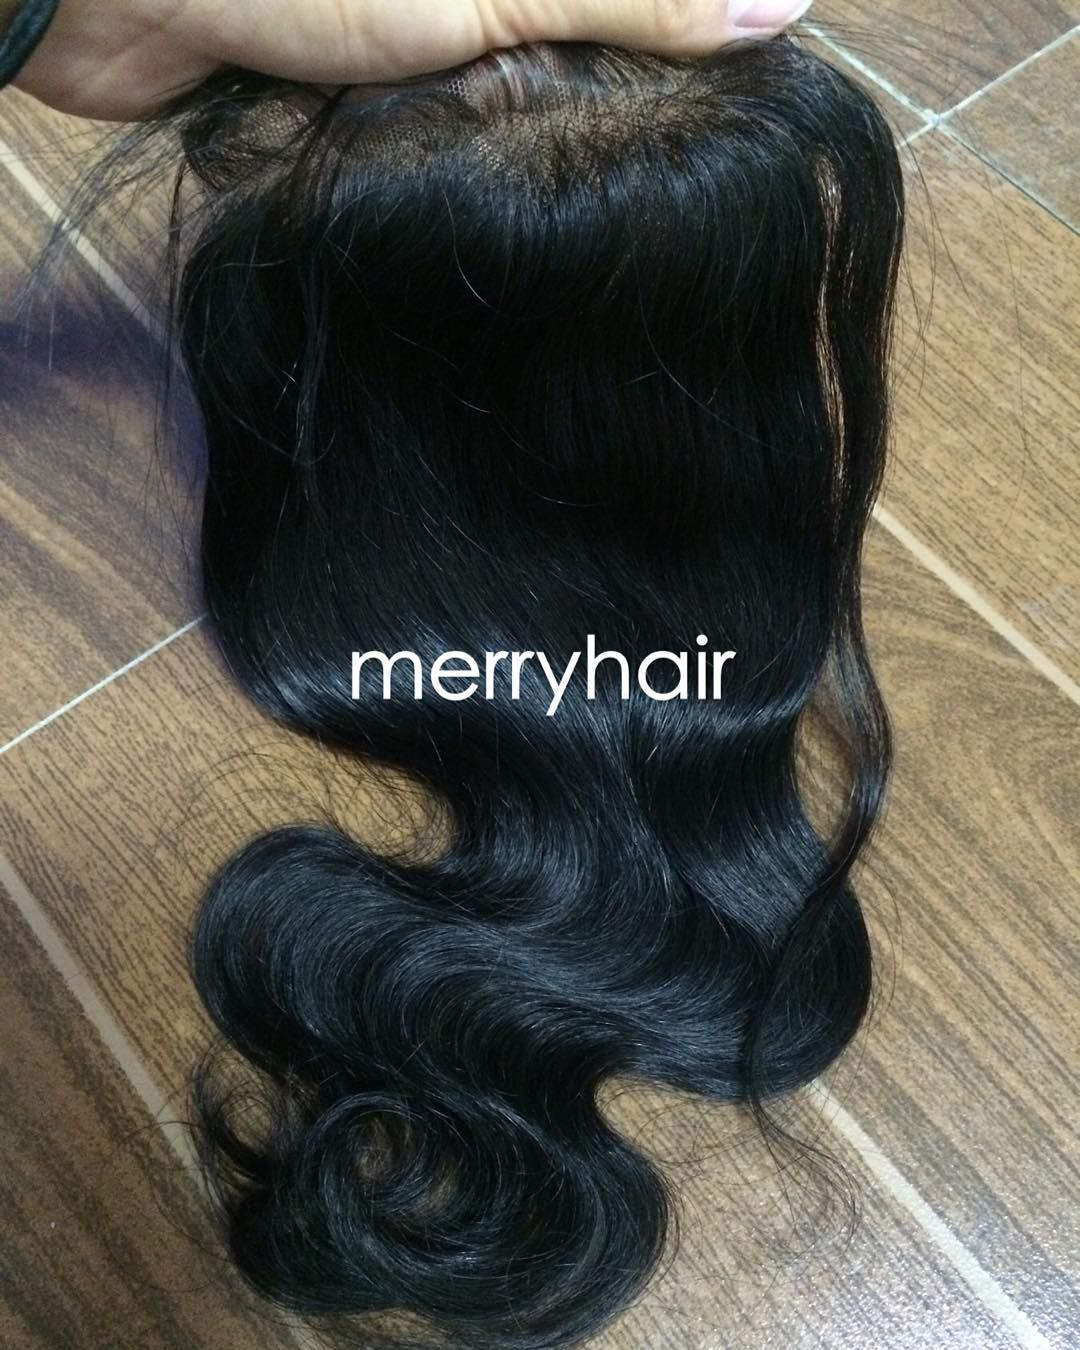 12inch body wave lace closure.  Email:merryhairicy@hotmail.com  Whatsapp:8613560256445.  THICK and BEAUTIFUL wefts #bundles #prices #Brazilian #Cambodian #Malaysian #Indian #Peruvian #Mongolian #virginhair #bundledeals #mayweather #hair #longhair#filipino #brazilian #mongolian #hair #peruvian #malaysian #loosewave #weave #deepwave #hair  #look #long #inches #bundles